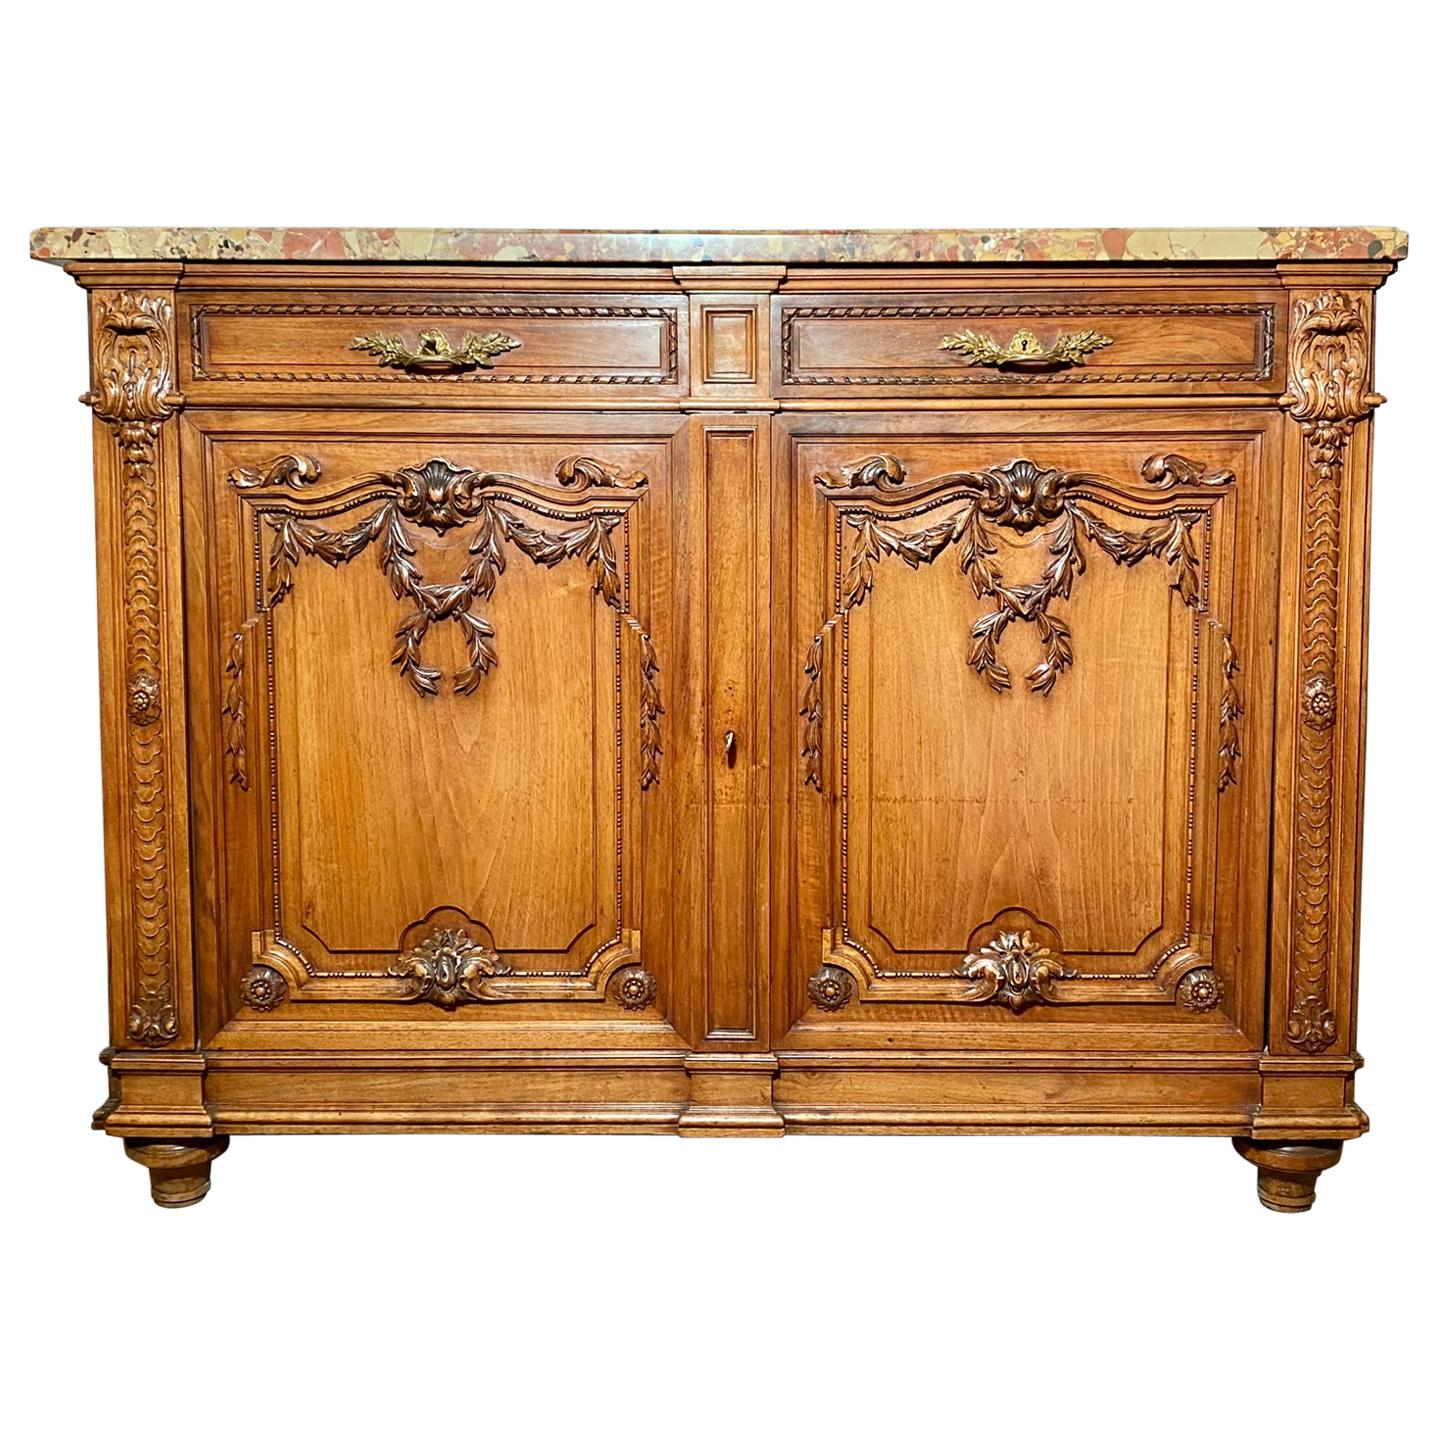 Antique French Walnut Louis XVI Finely Carved Cabinet, circa 1880